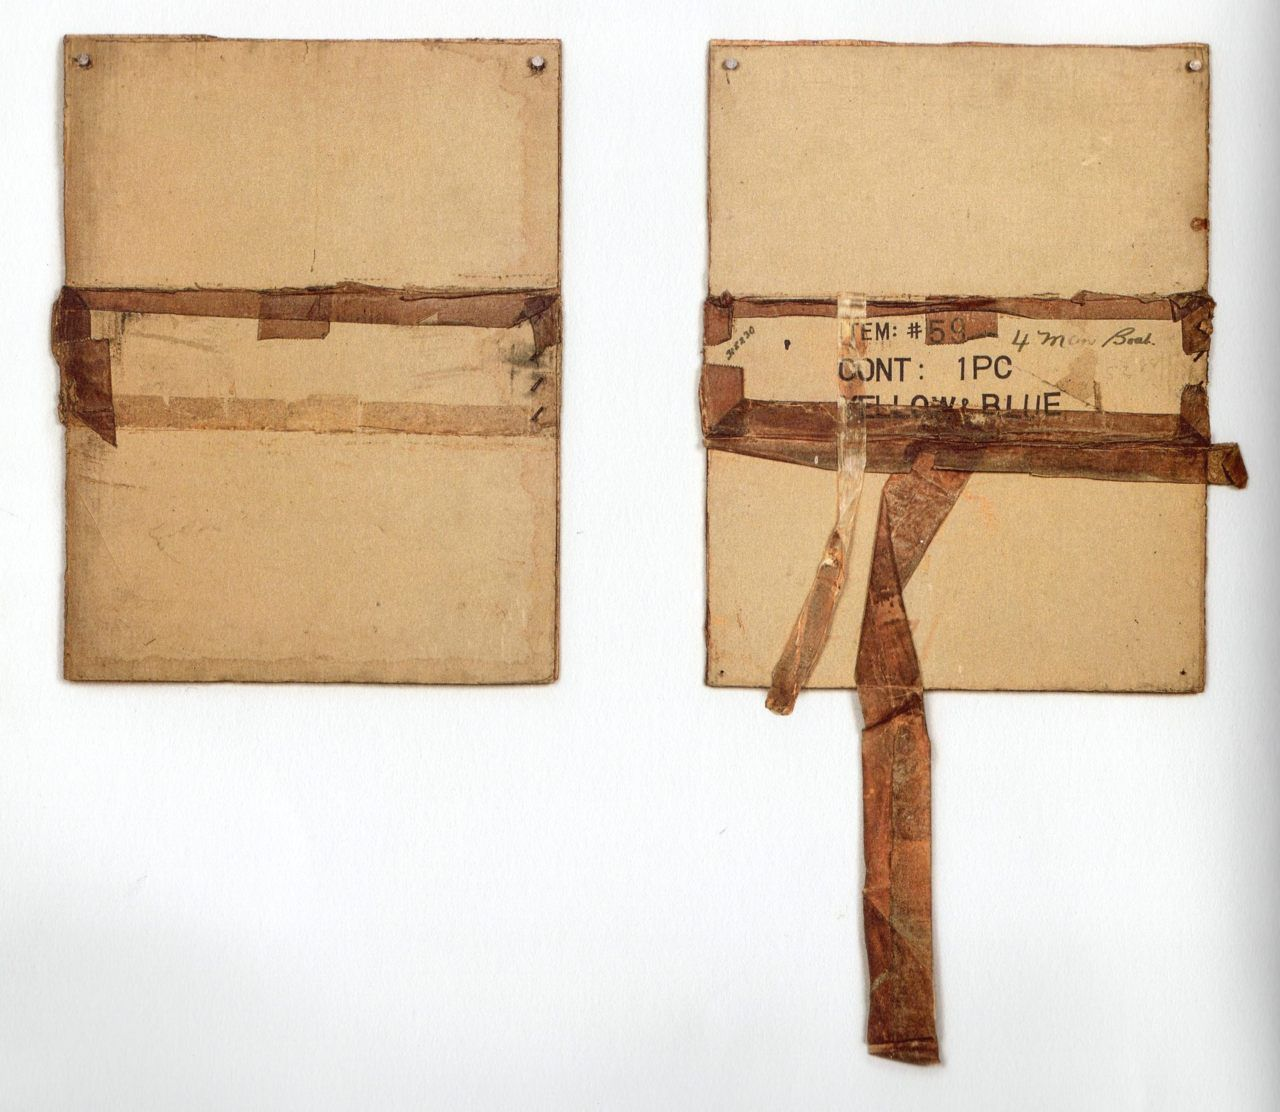 Robert Rauschenberg, 'Smash Up (Cardboard)' (1971)